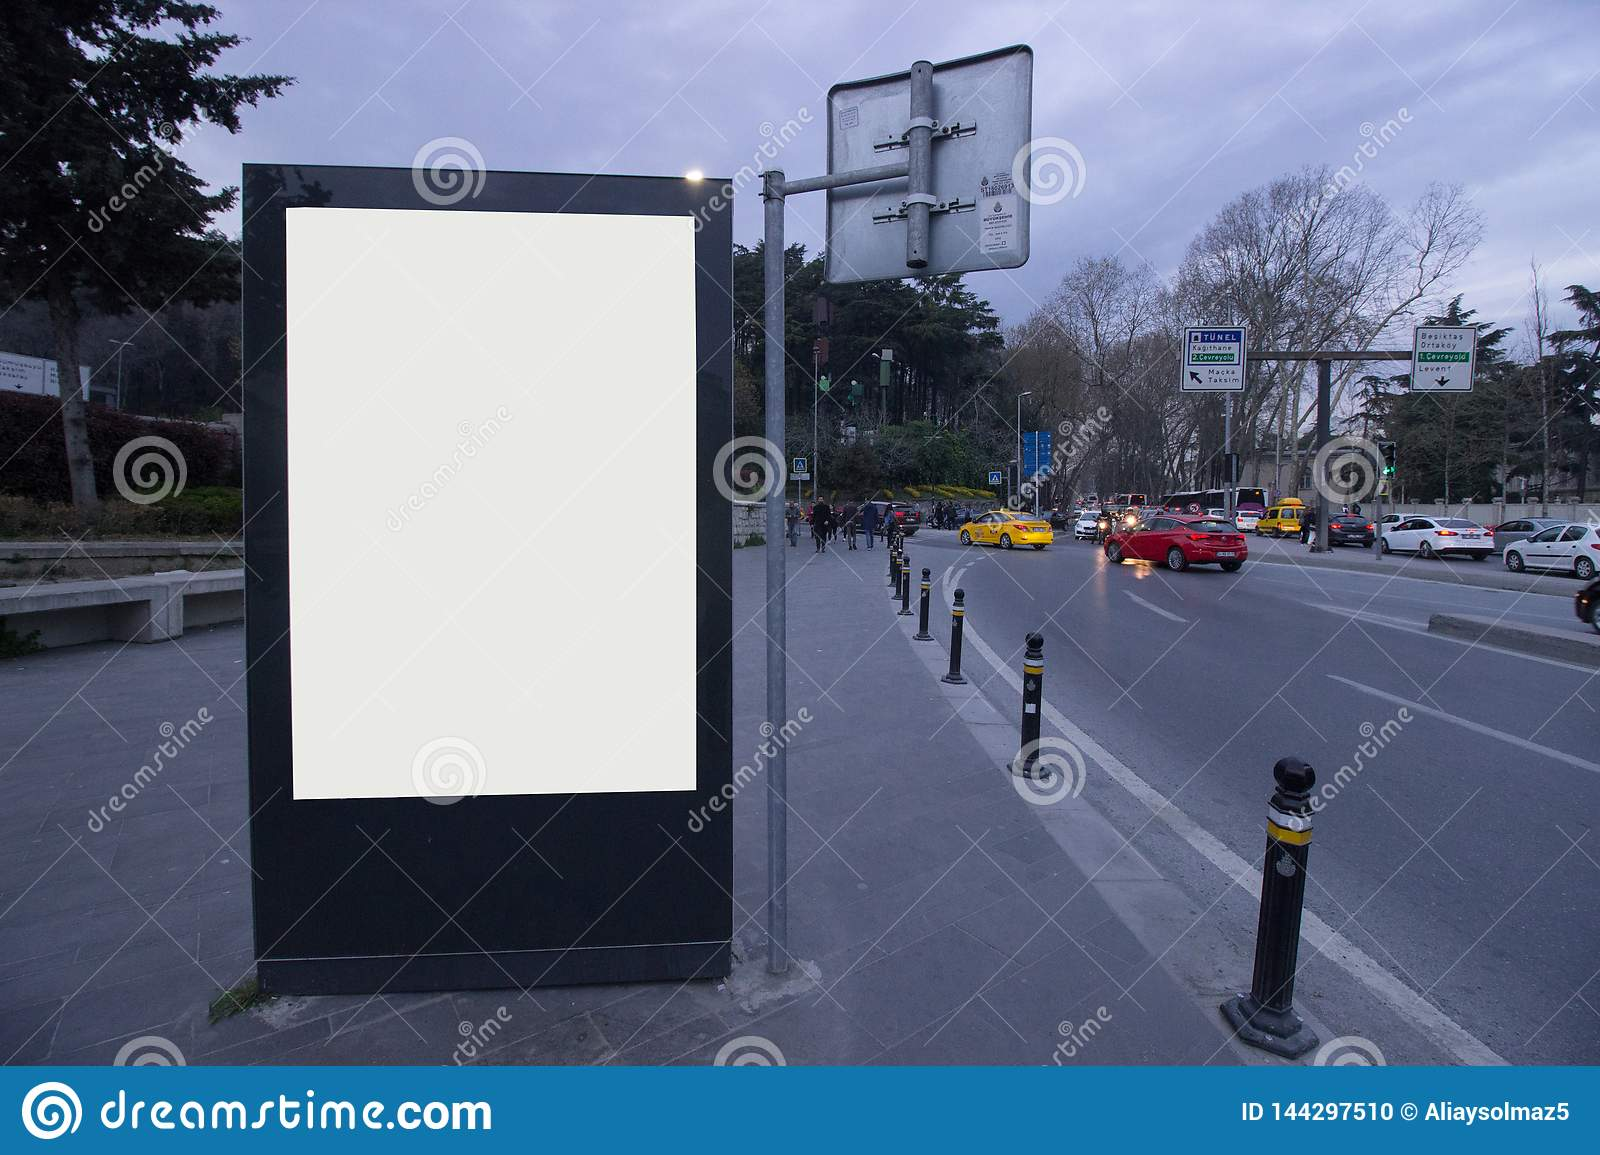 Istanbul Blank Billboards Evening Time, Bus Station - Outdoor Billboard for Advertisement